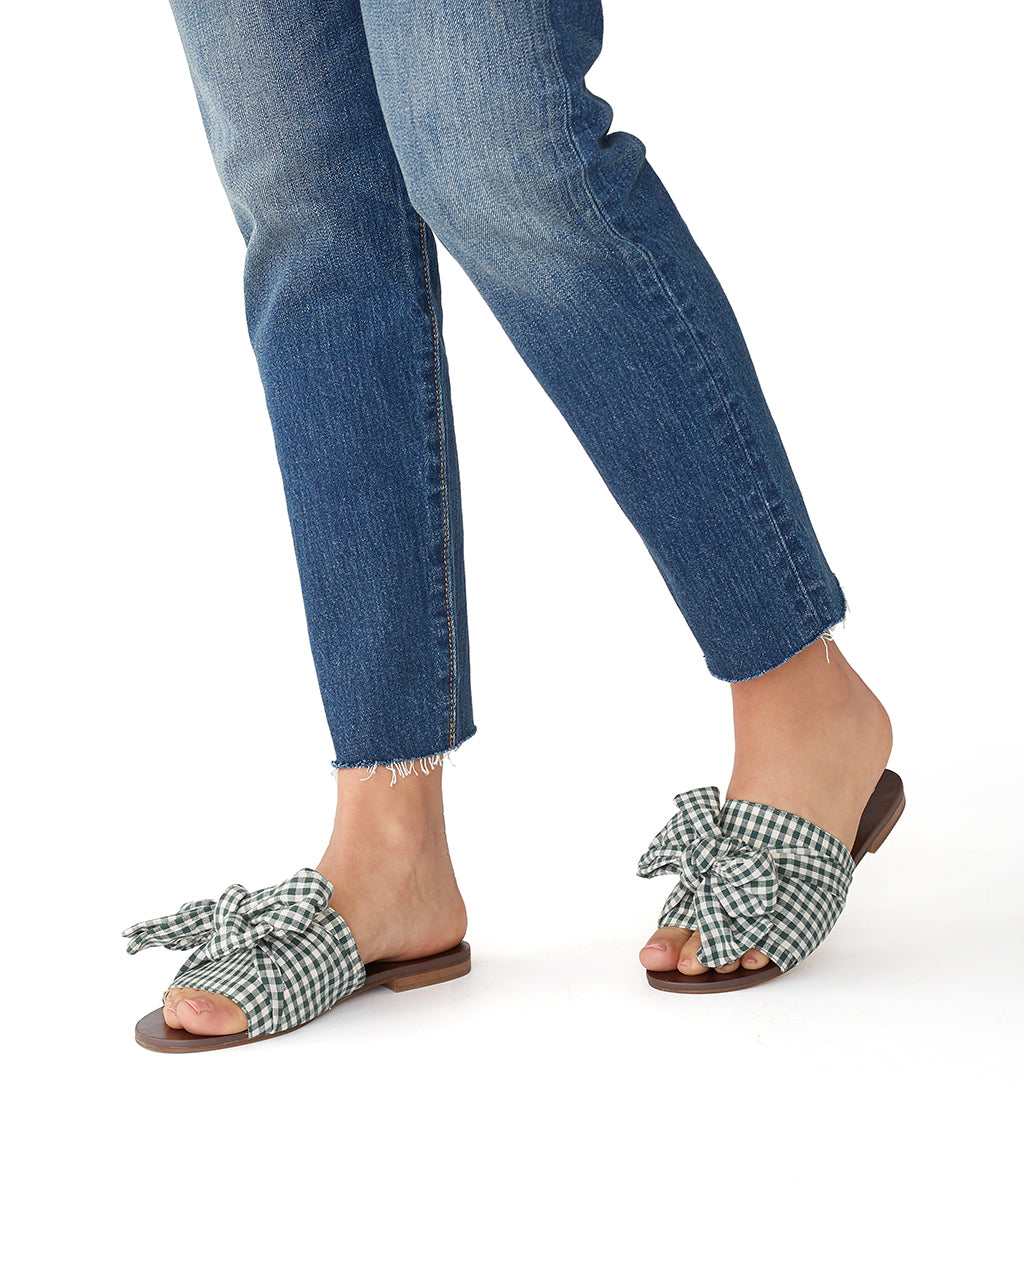 woman wearing jeans and backless sandals with green gingham bows